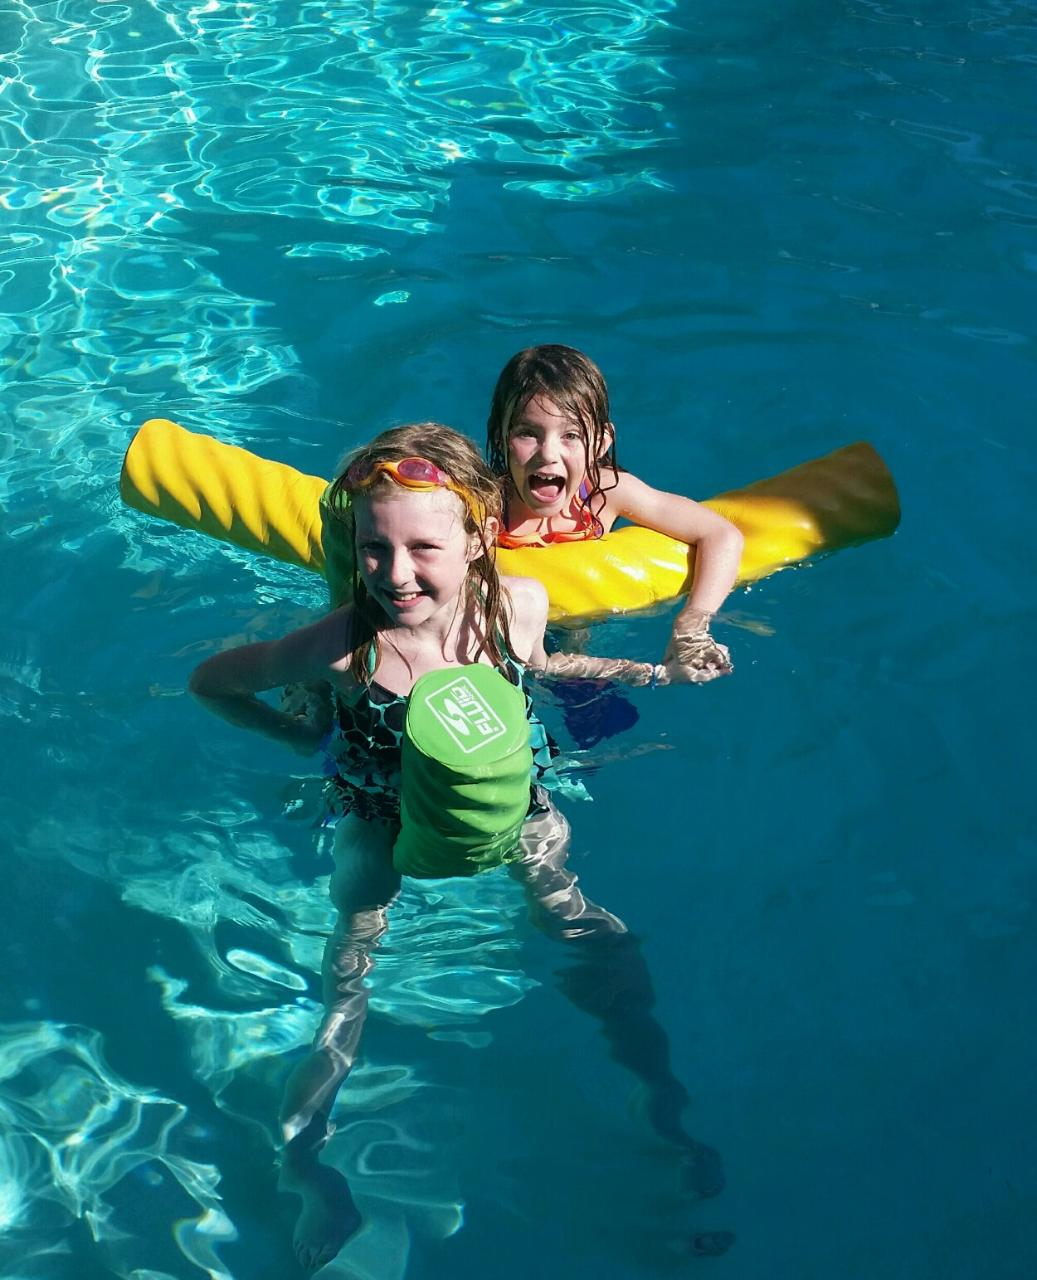 Pool Party Safety In Newport Beach Calif Pool Heaven